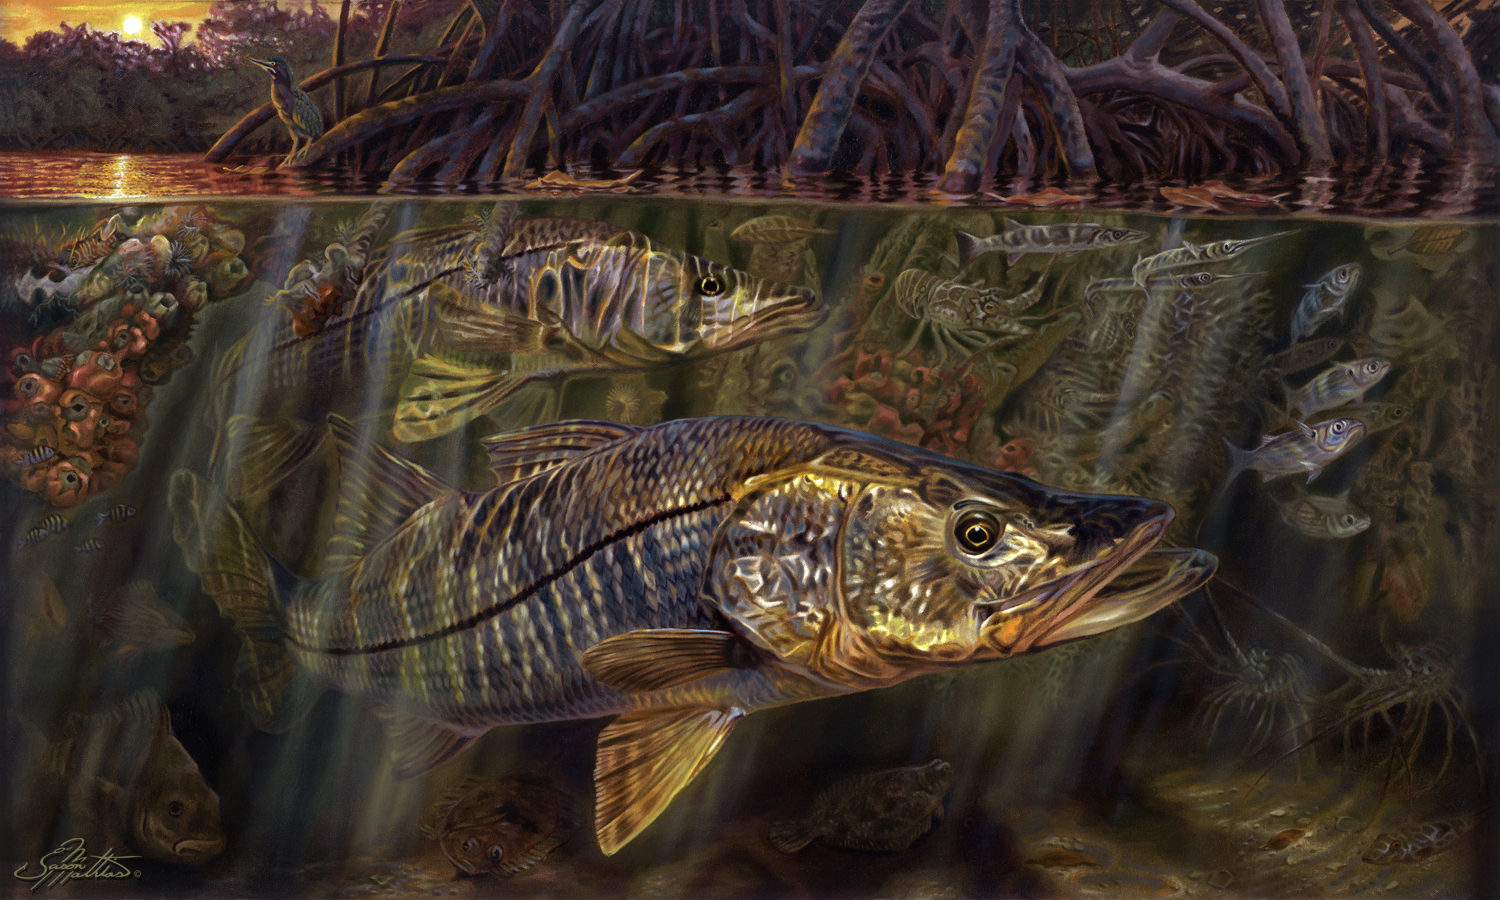 grove-garden-snook-art-painting-underwater-mangrove-scene-sunset-sunrise-jason-mathias-art-gamefish-sportfish-fishart-gift.jpg